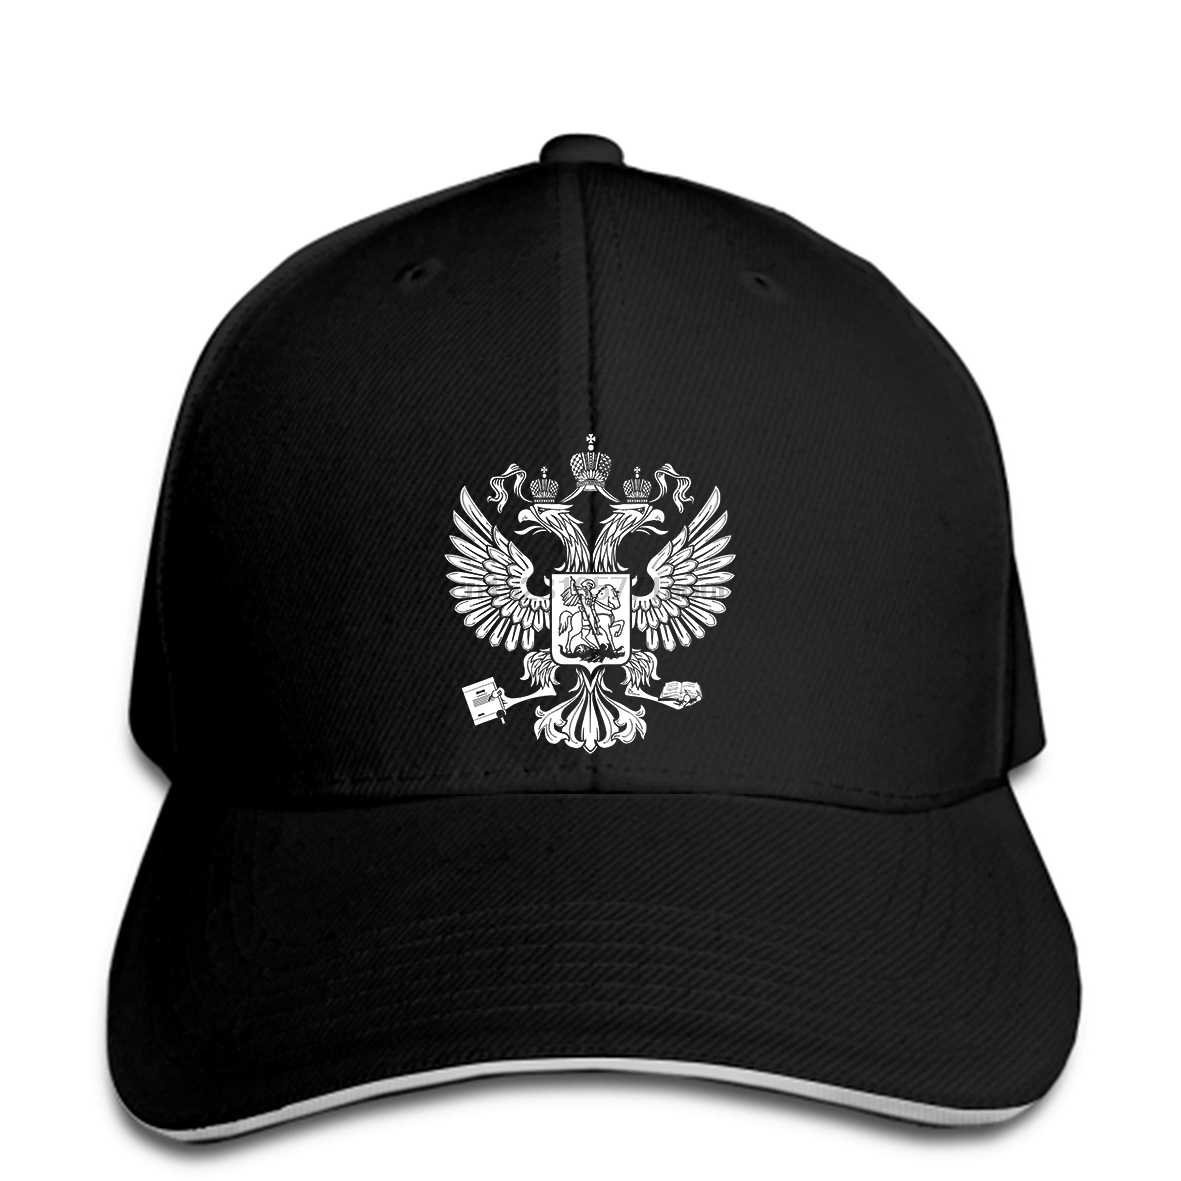 Baseball cap NEW Baseball caps Russian flag double-headed eagle coat of arms Russia Moscow HQ